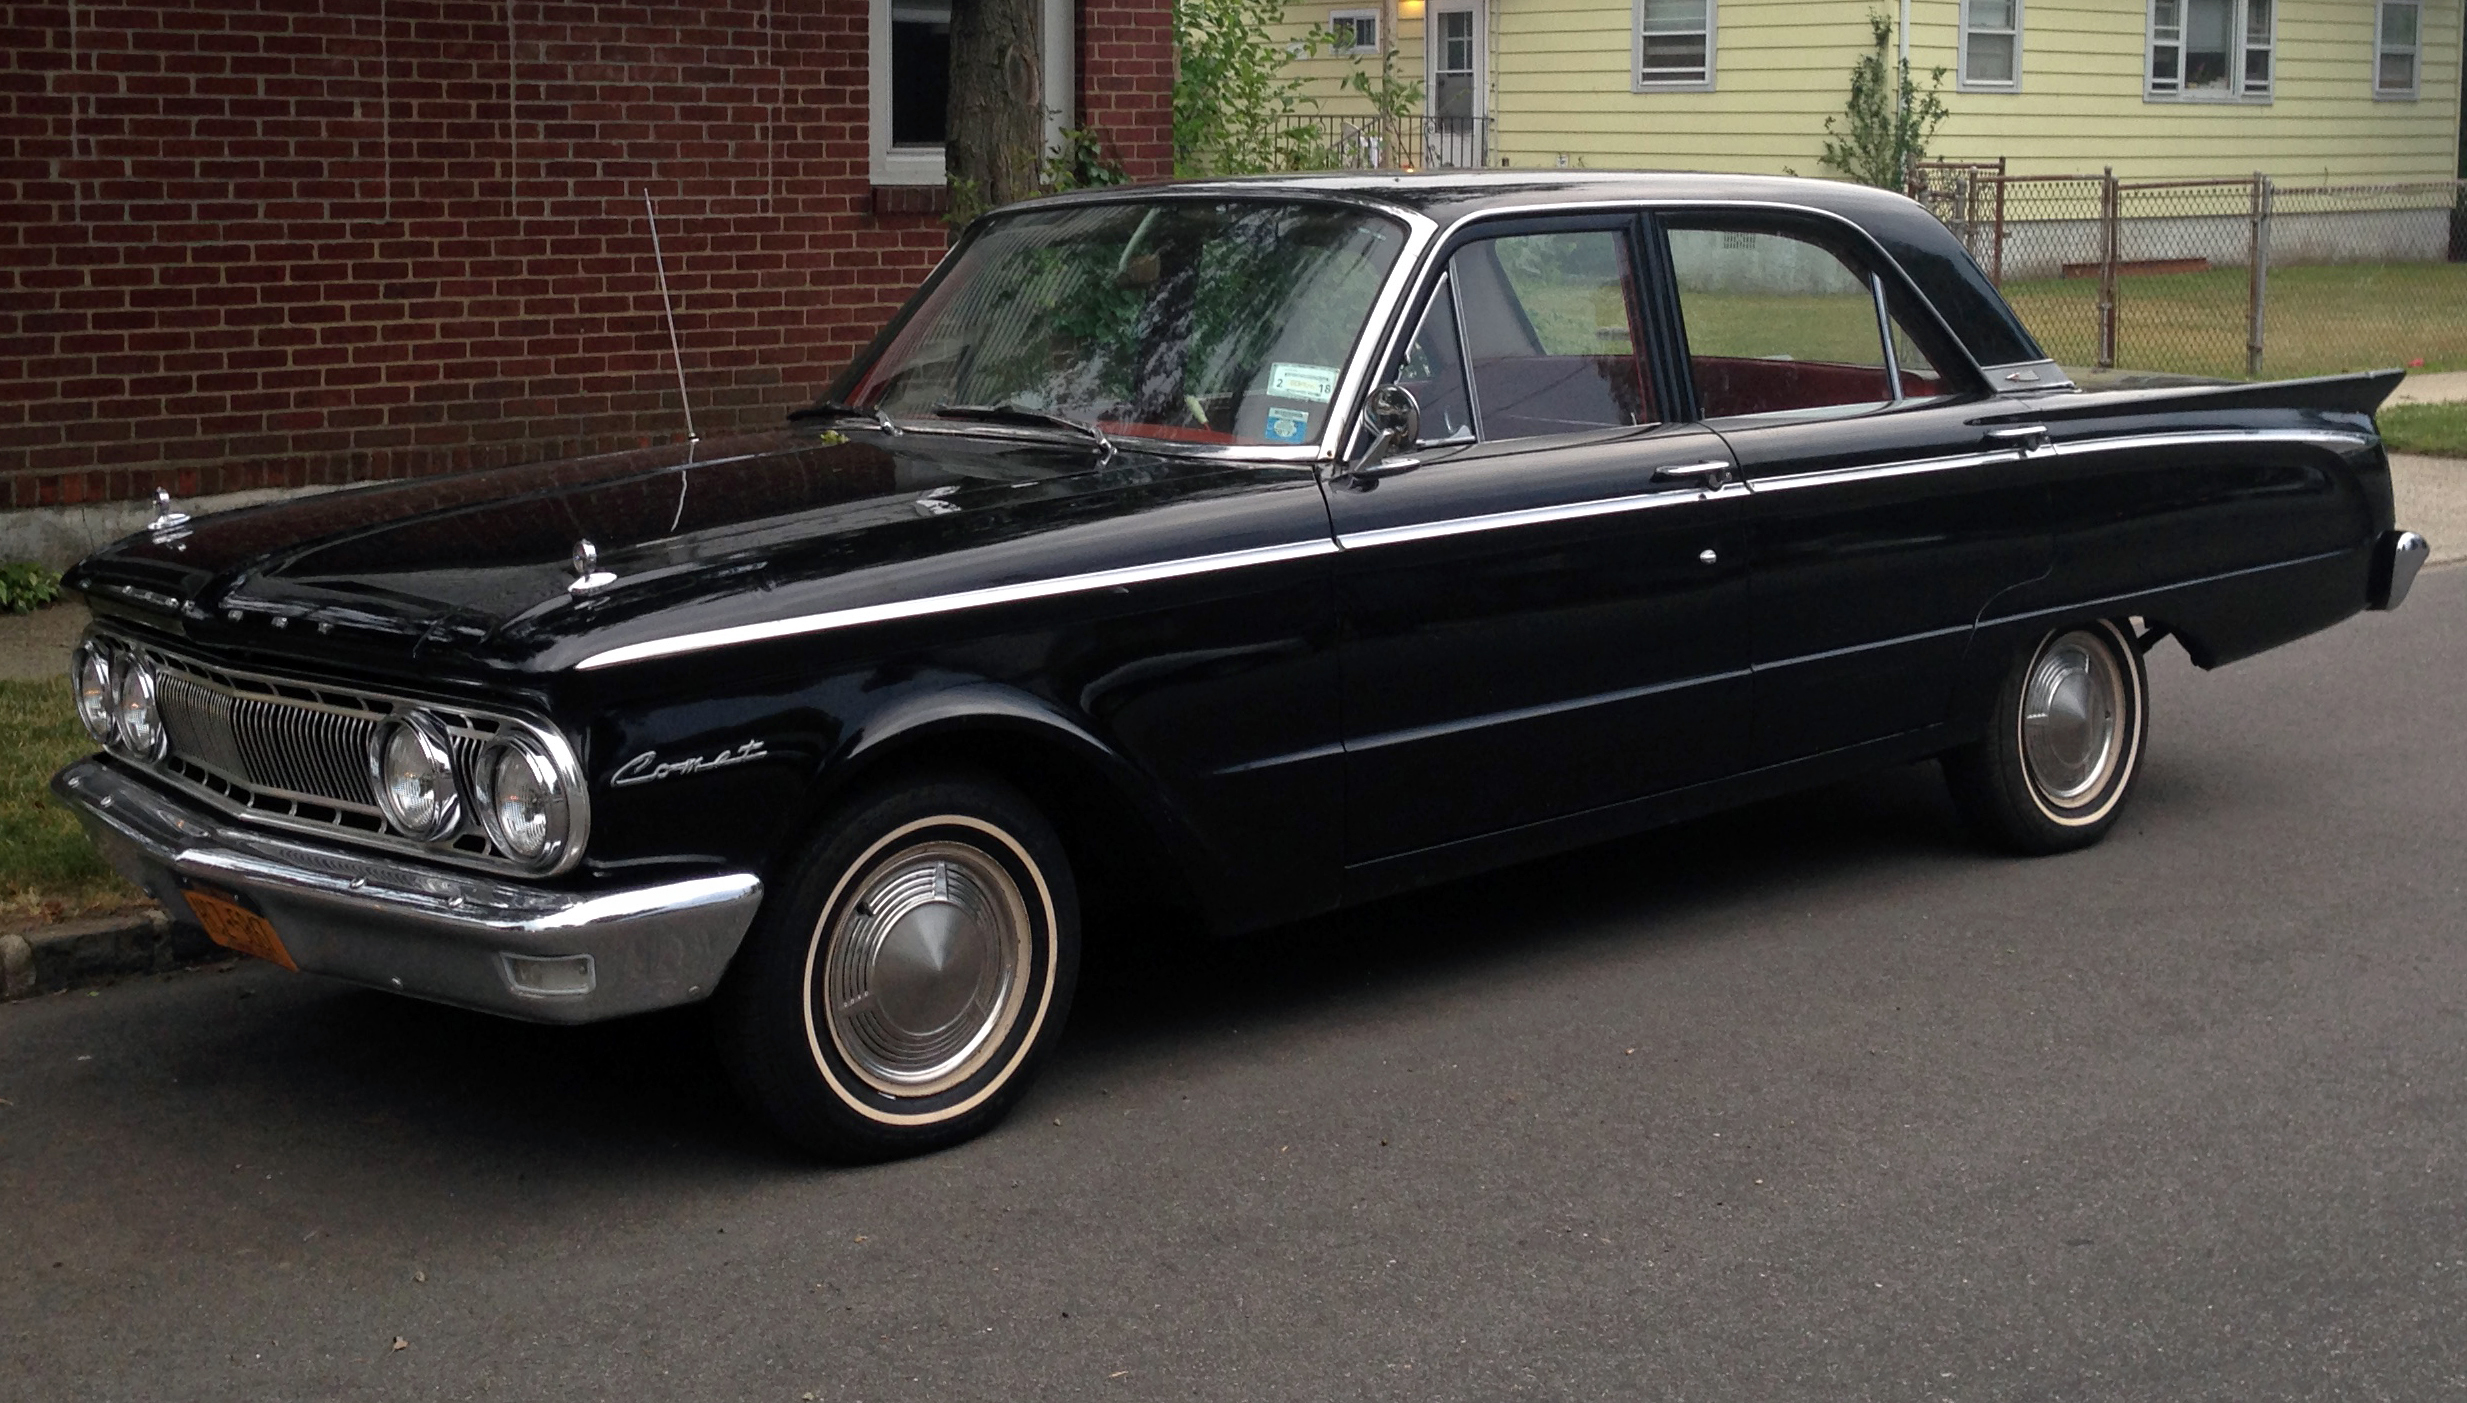 2 Door Convertible >> File:1962 Mercury Comet 4-door sedan (black, front left).jpg - Wikimedia Commons